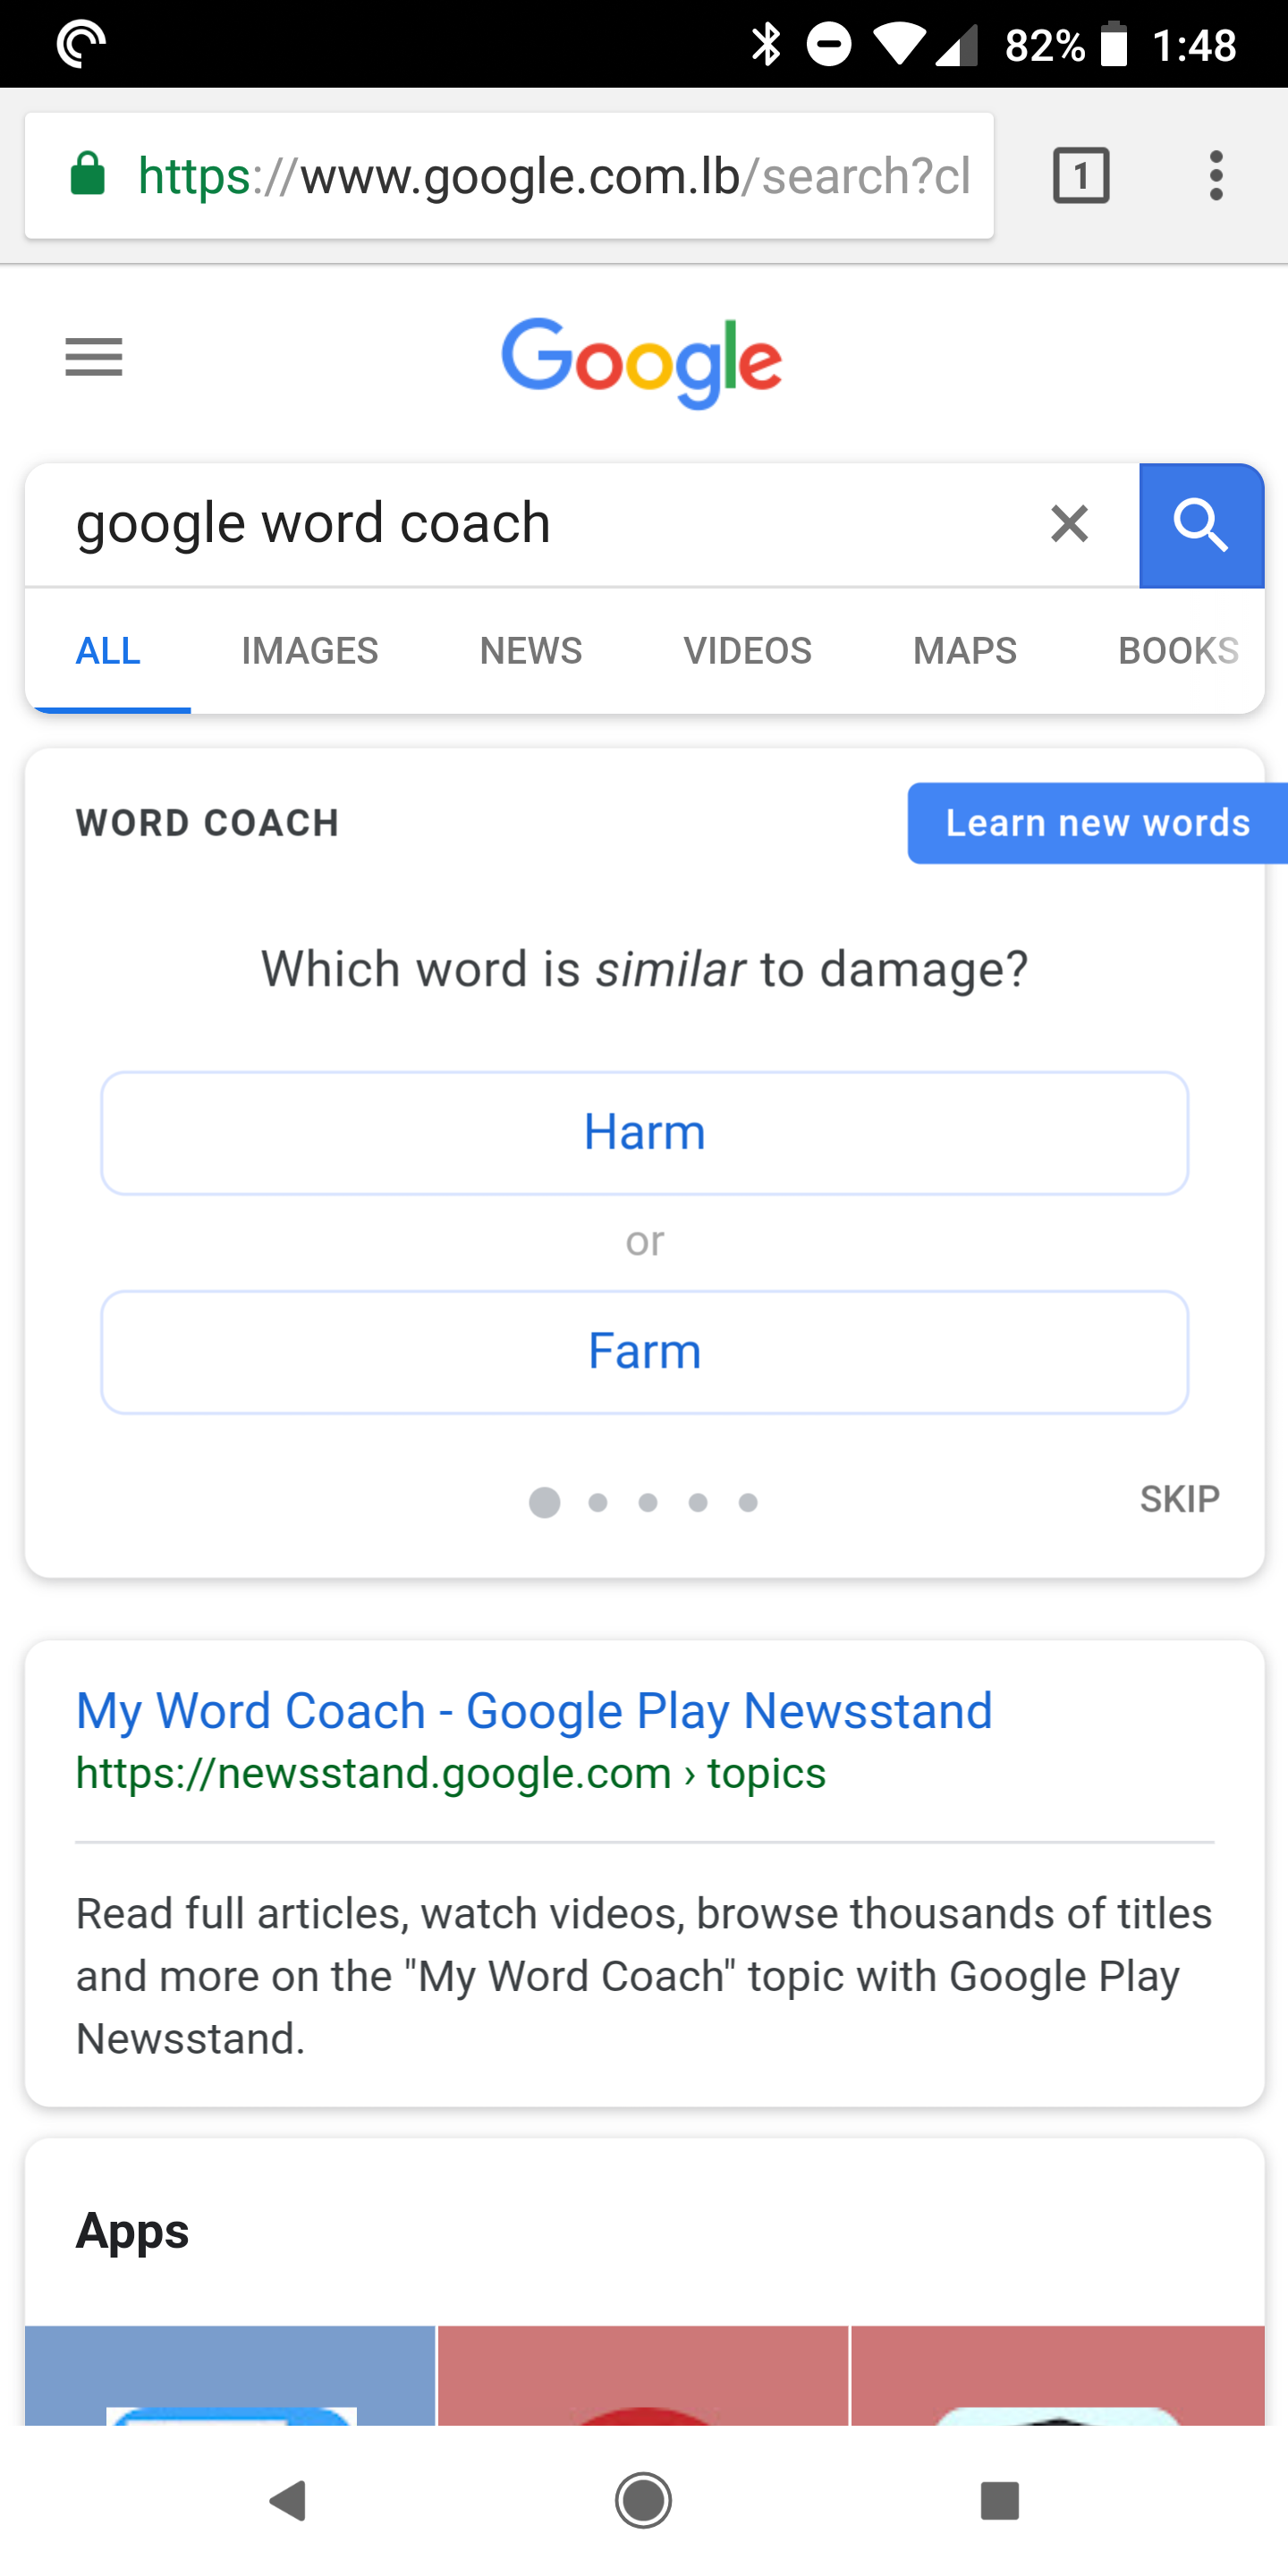 Google Word Coach tests your vocabulary knowledge in bite-sized